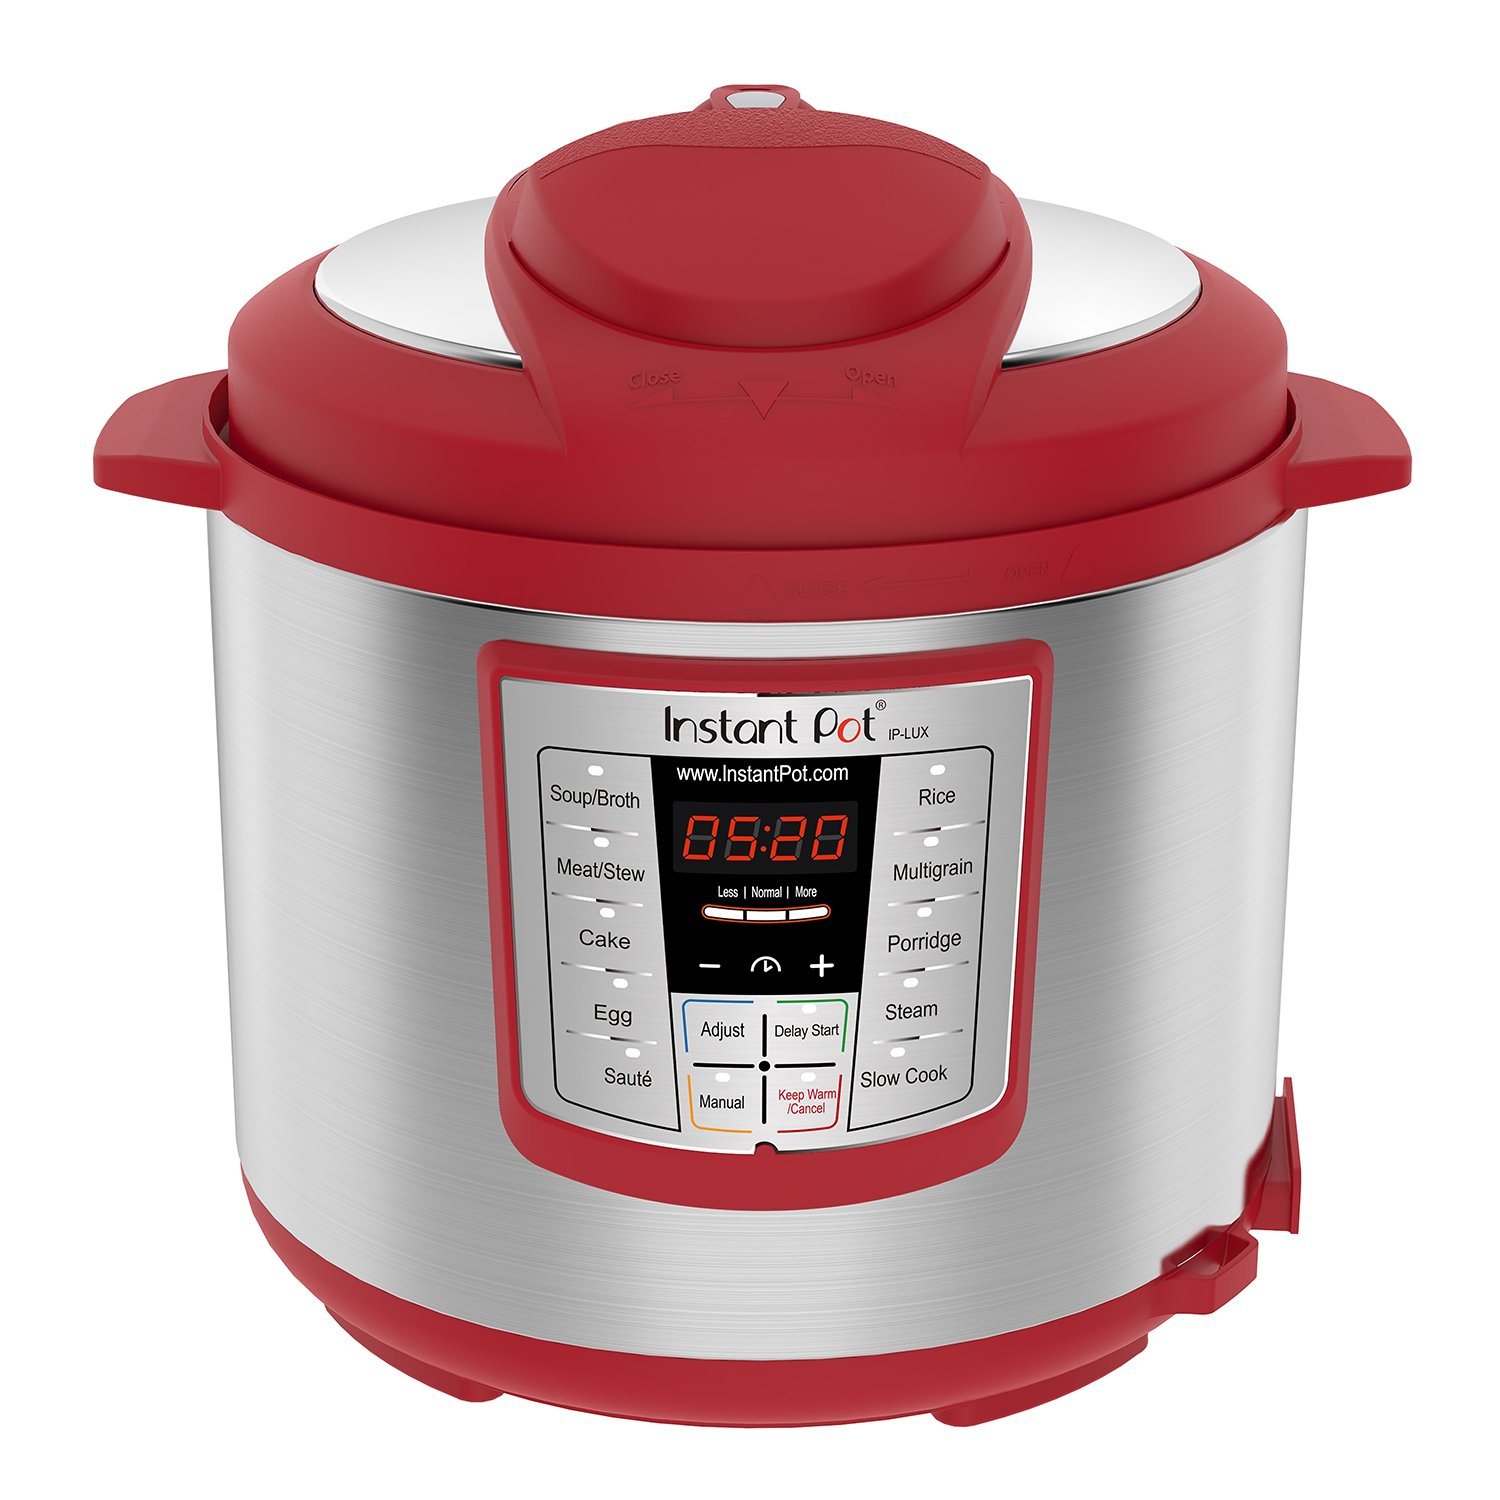 instant pot lux 6 qt 6 in 1 pressure cooker